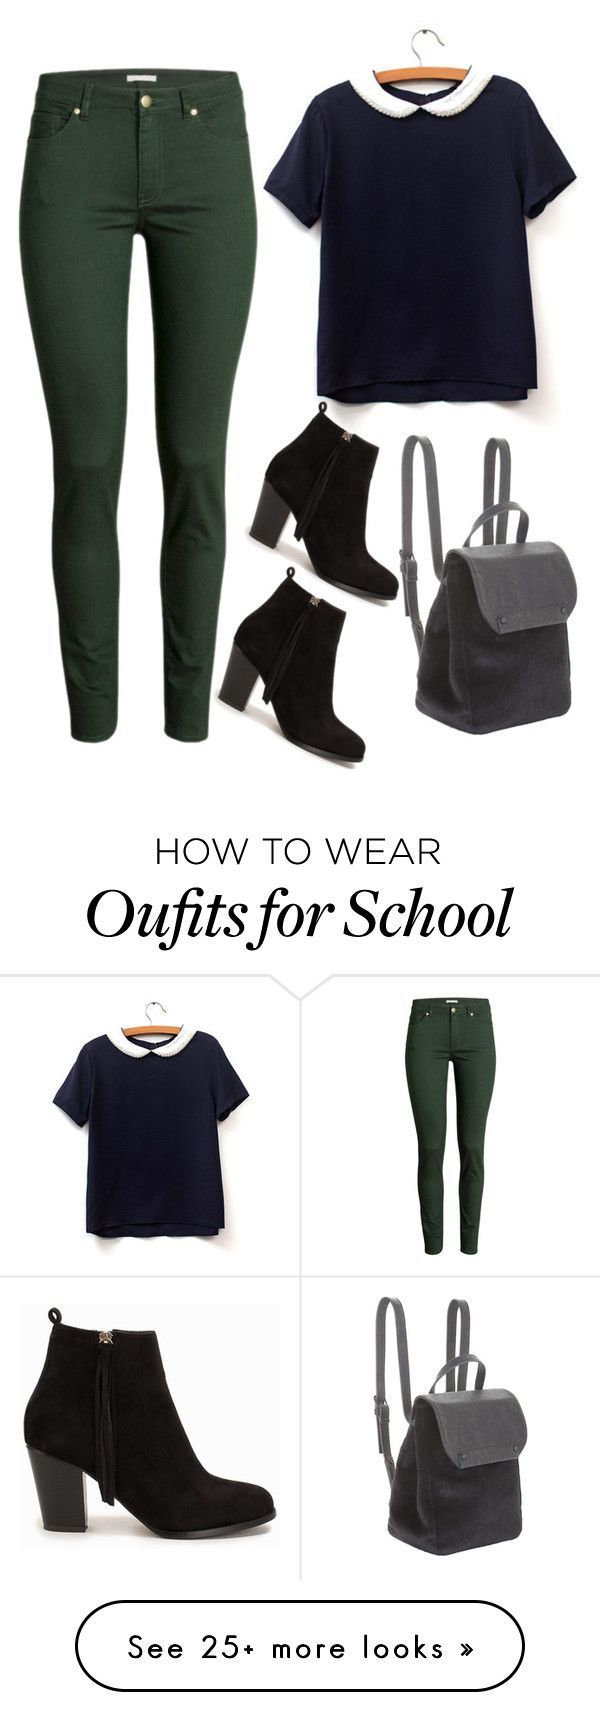 school is my problem by ziva-vrabac on Polyvore featuring HM, BCBGeneration and Nly Shoes